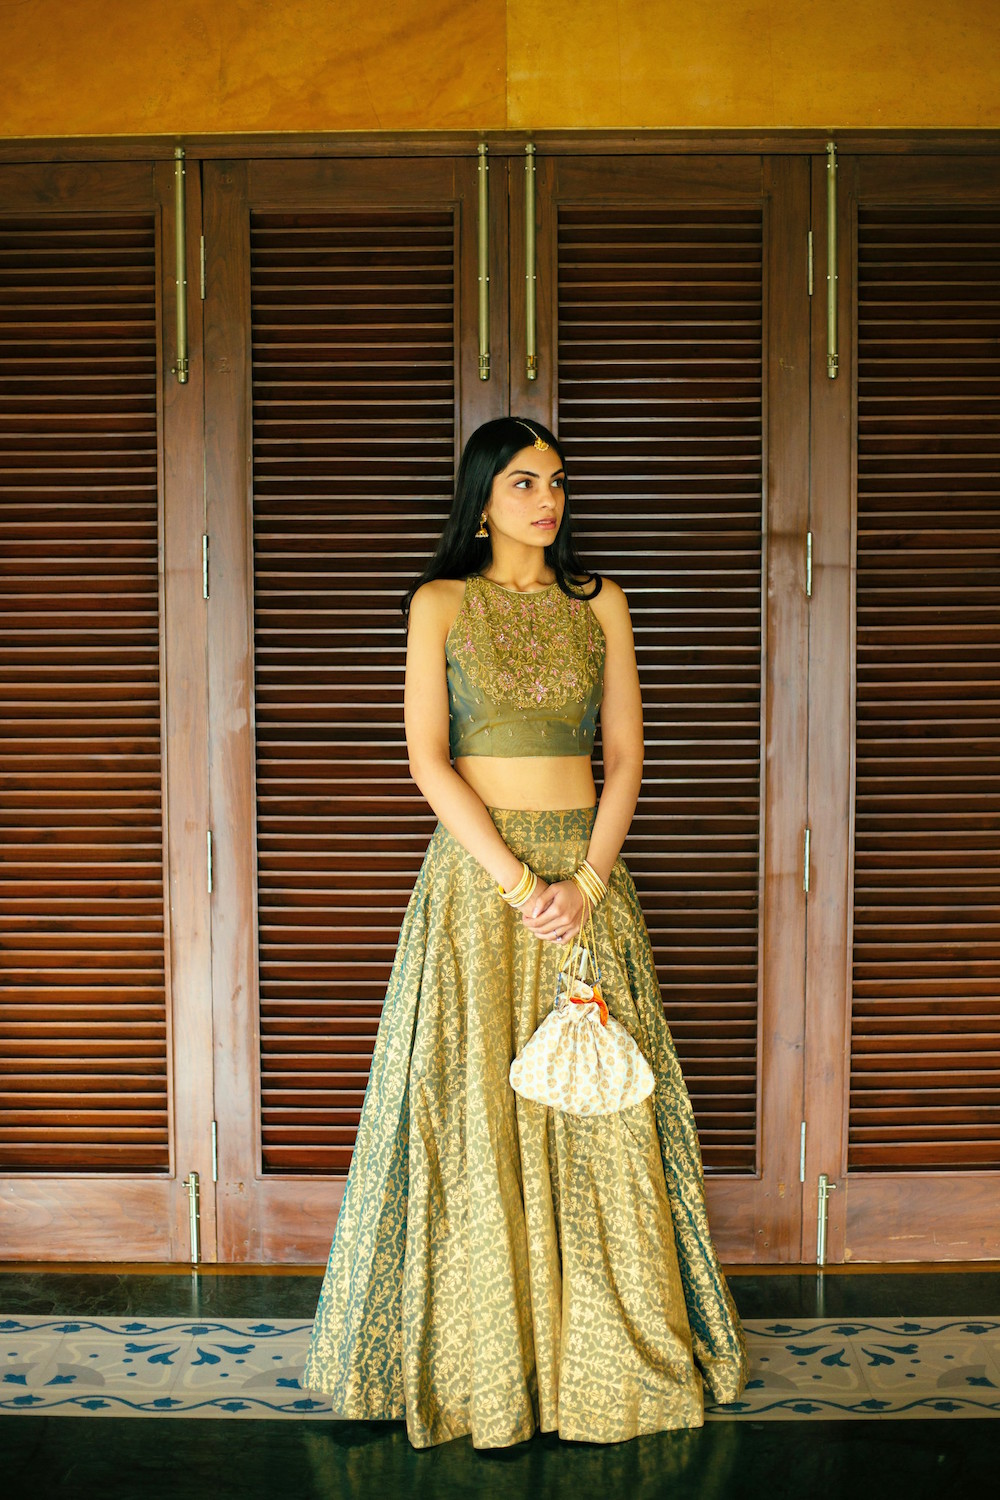 Green Silk Lehenga and crop top- Bridal Mehendi Outfit